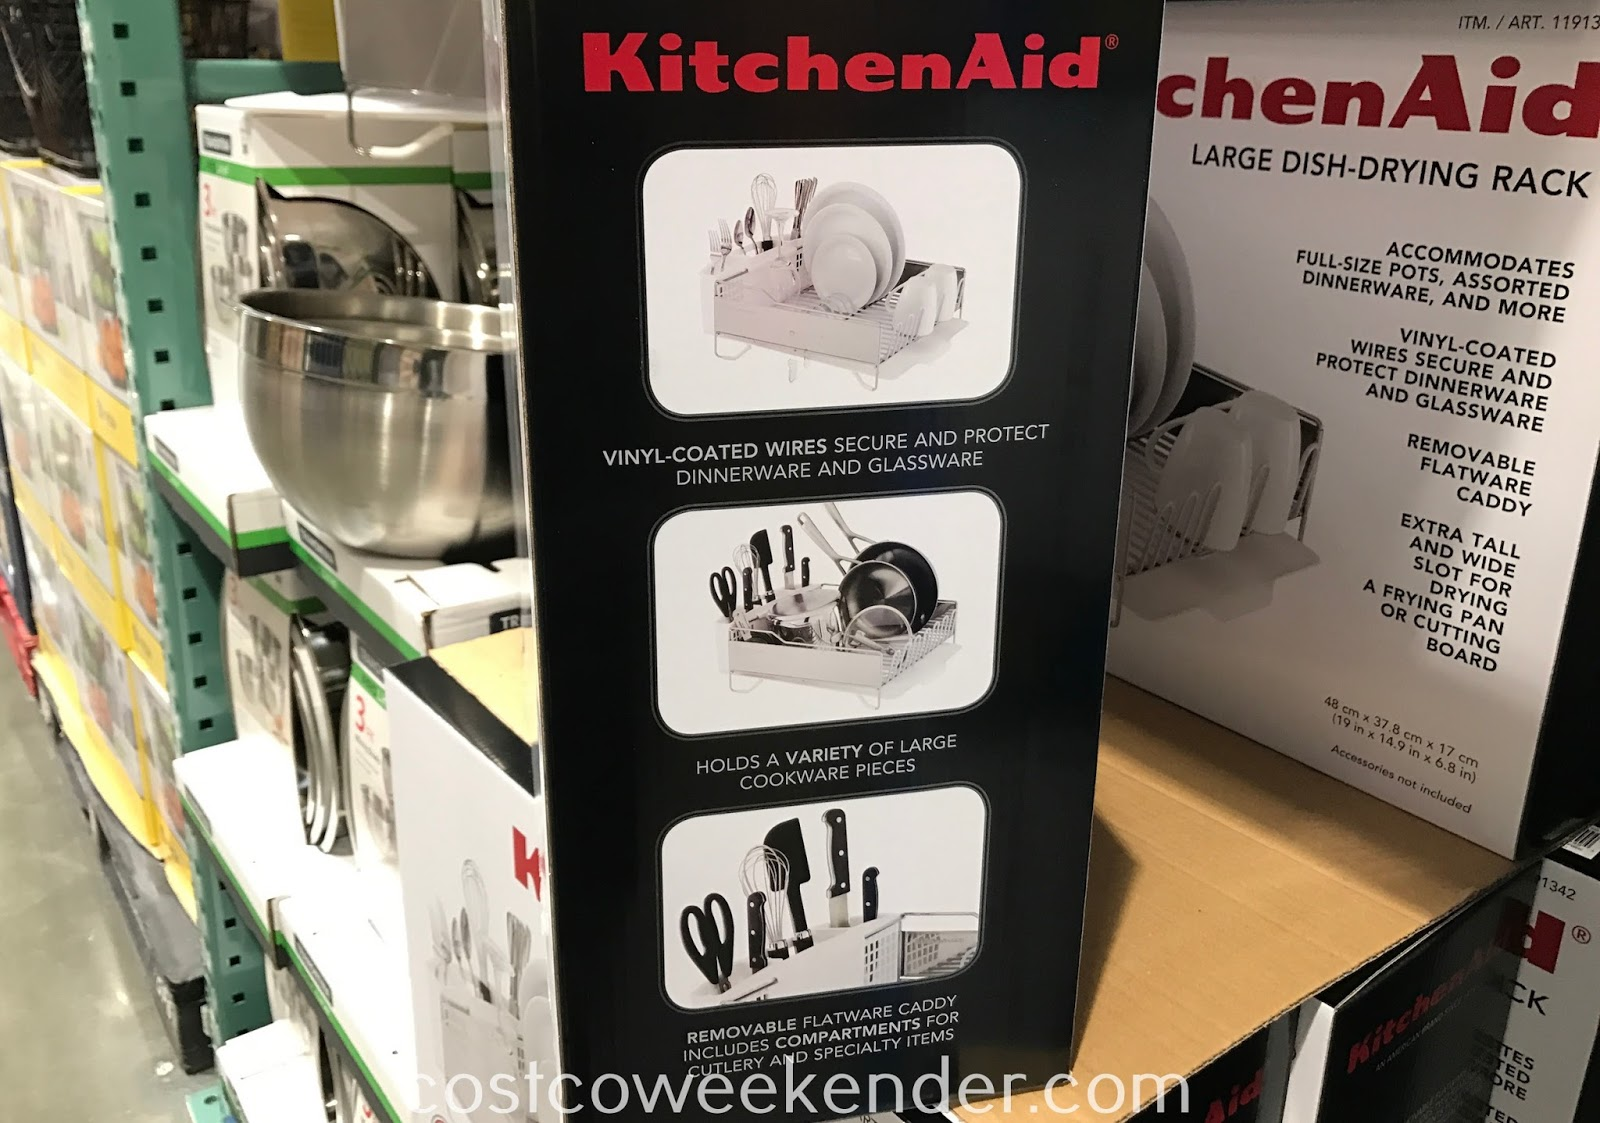 KitchenAid Large Dish-Drying Rack has enough room for all your dishes